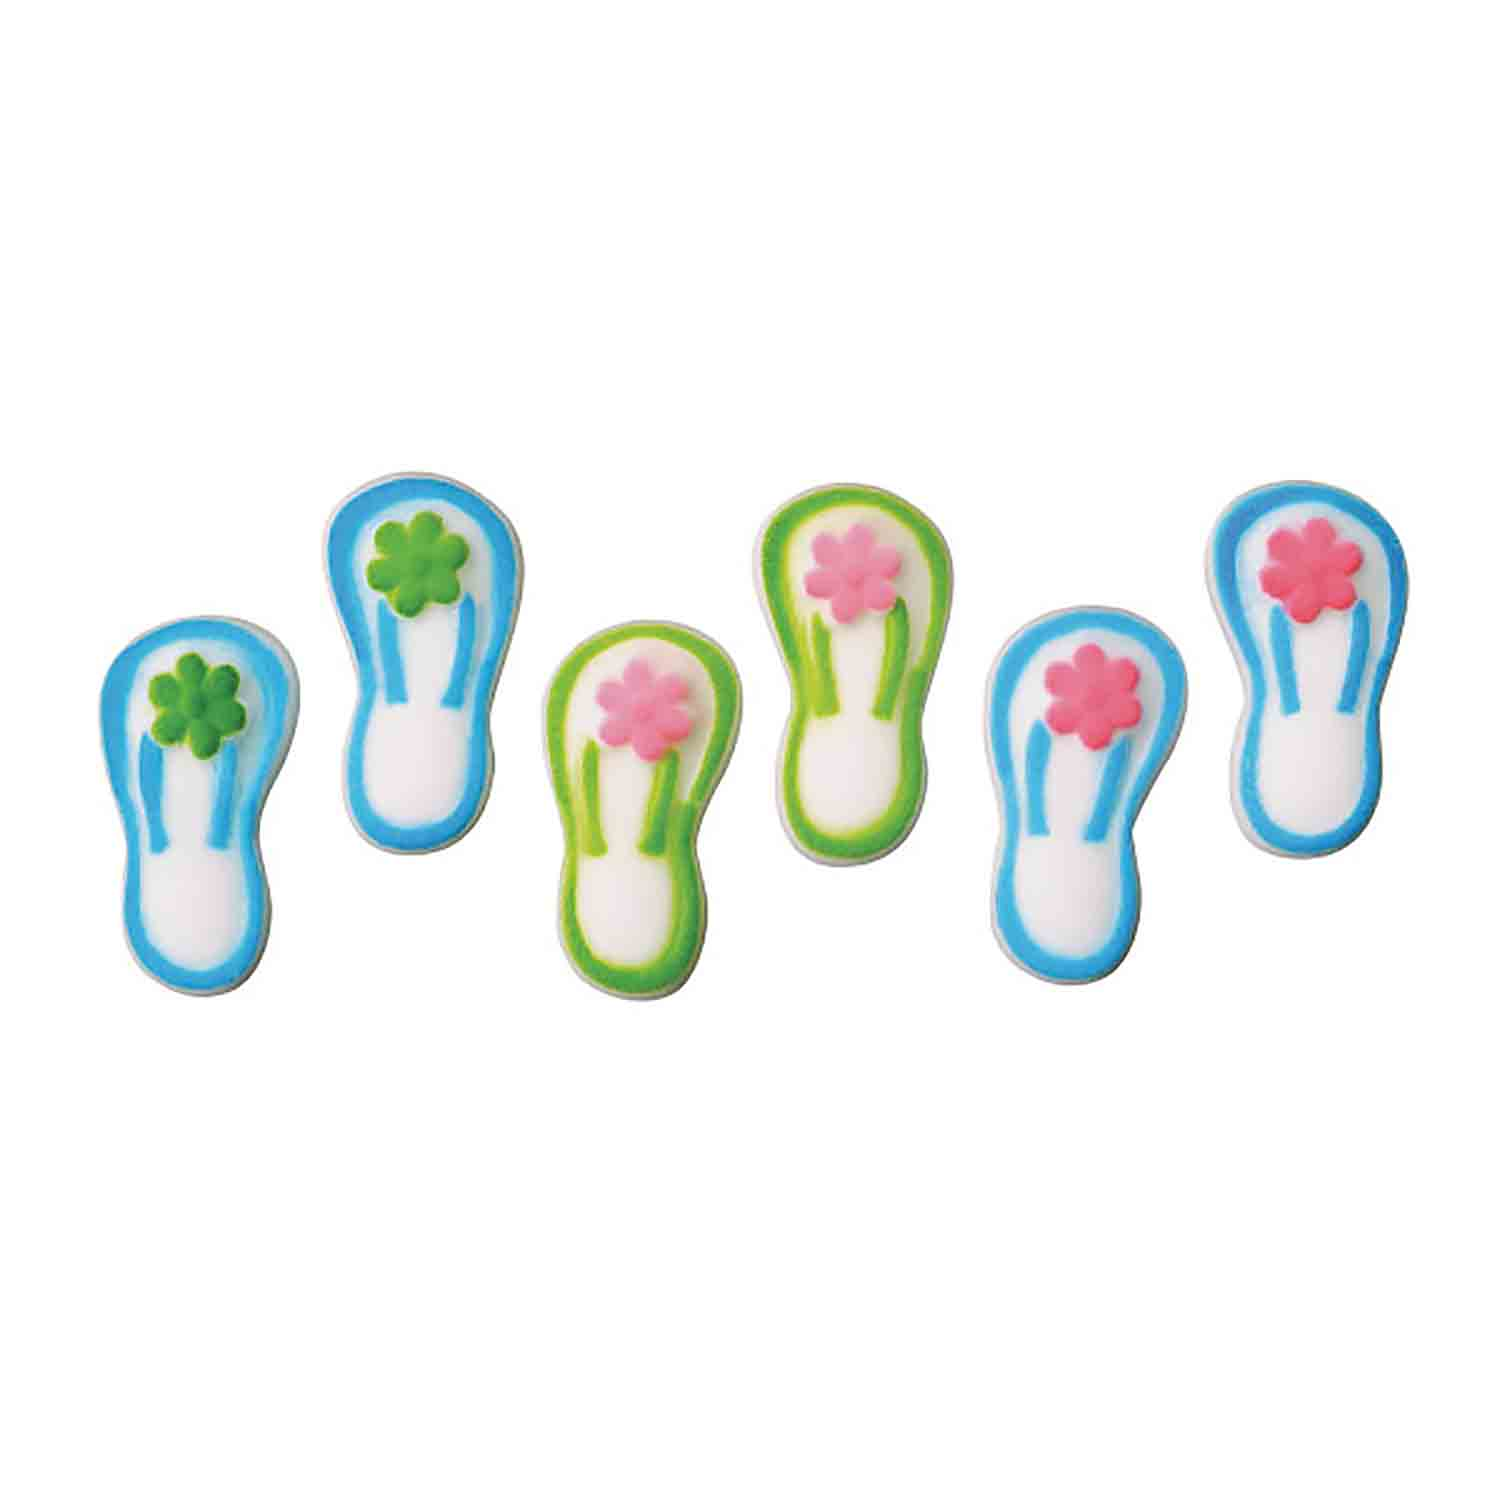 Dec-Ons® Molded Sugar - Flip Flop Sandals